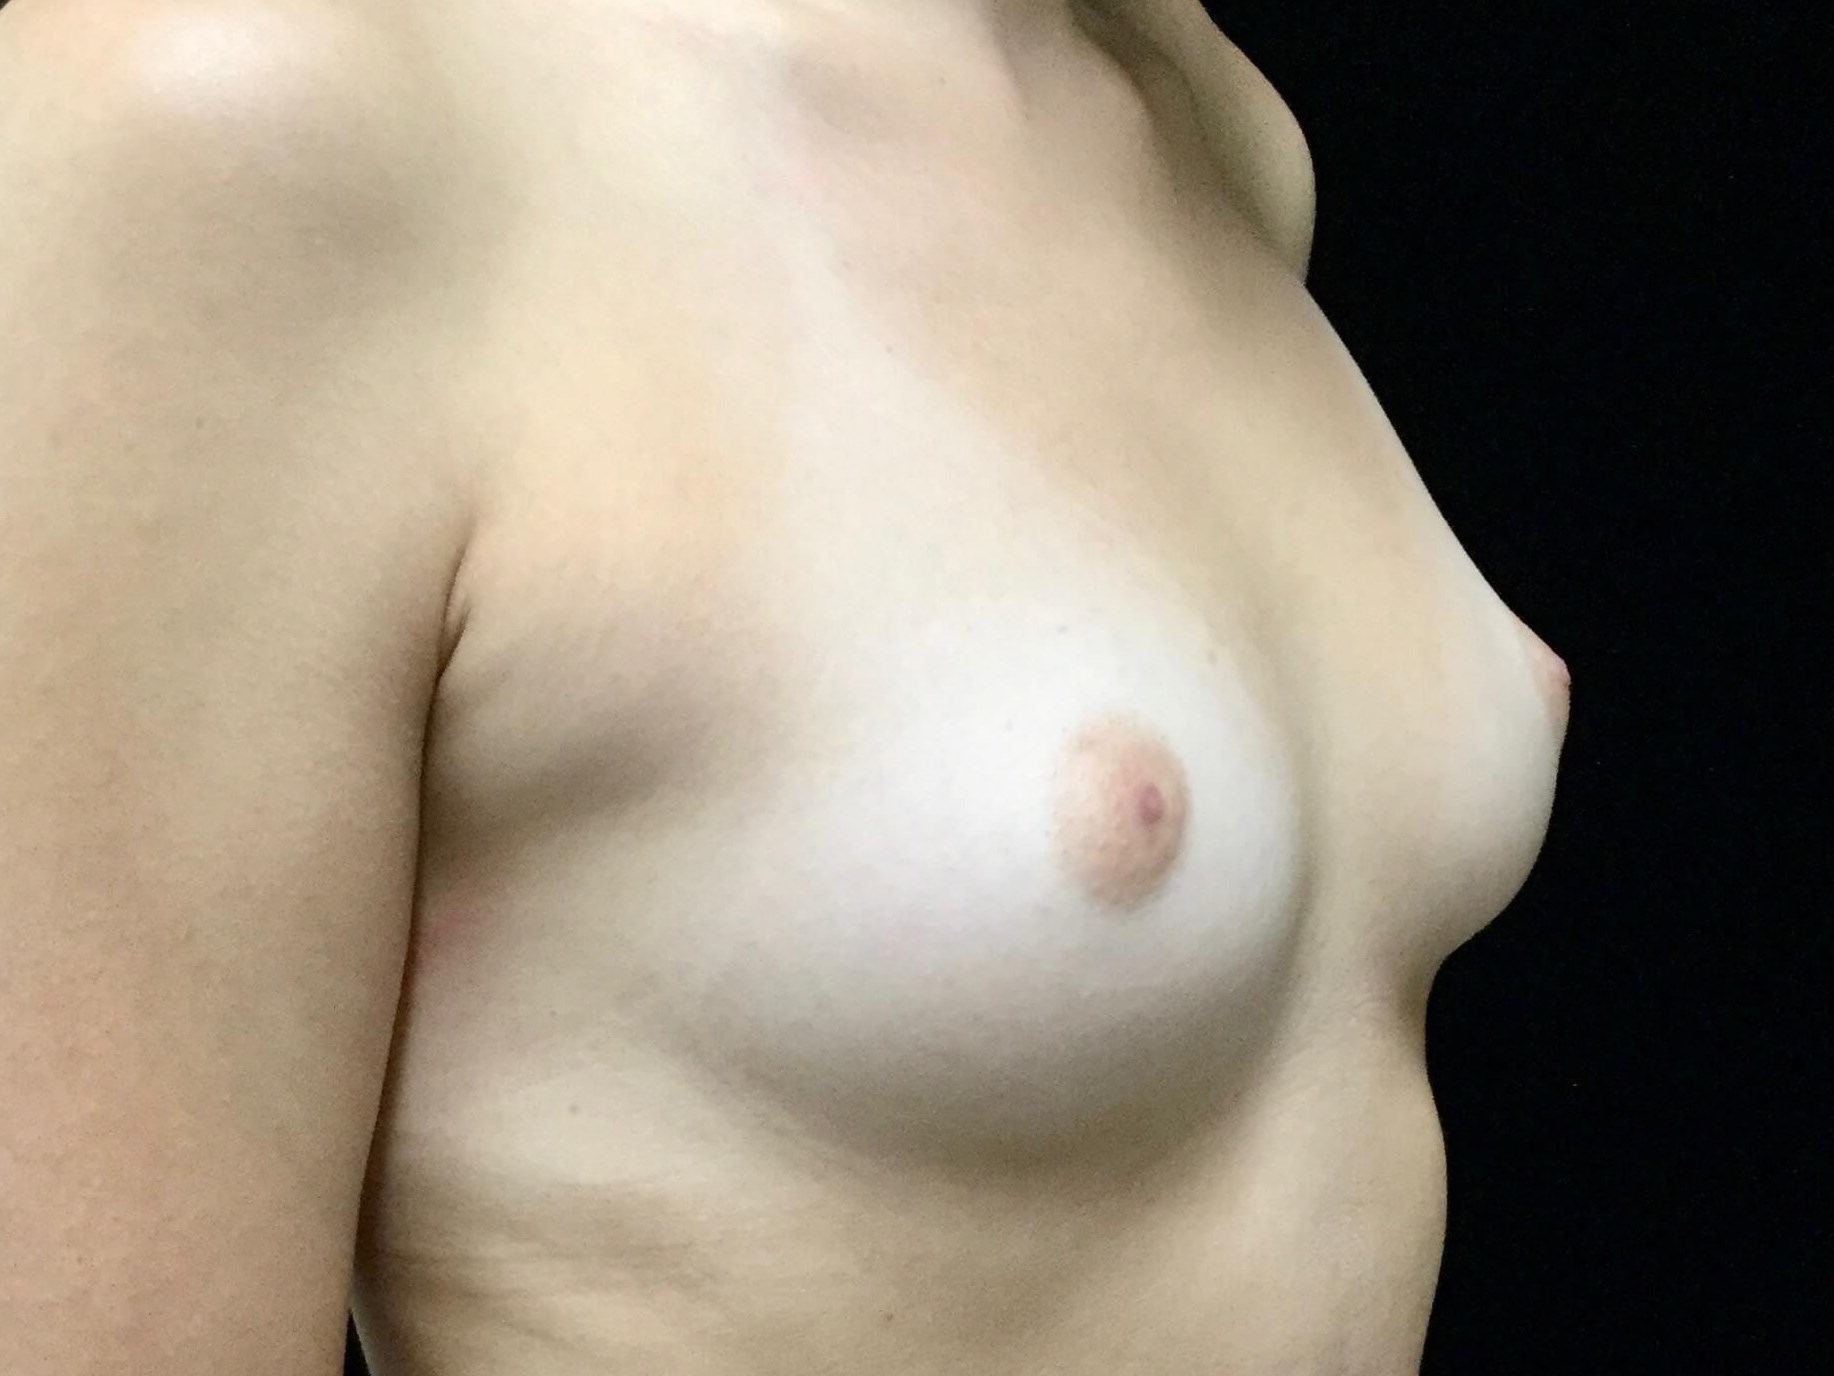 DALLAS, TEXAS WOMAN HAS BREAST AUGMENTATION WITH SILICONE GEL BREAST IMPLANTS